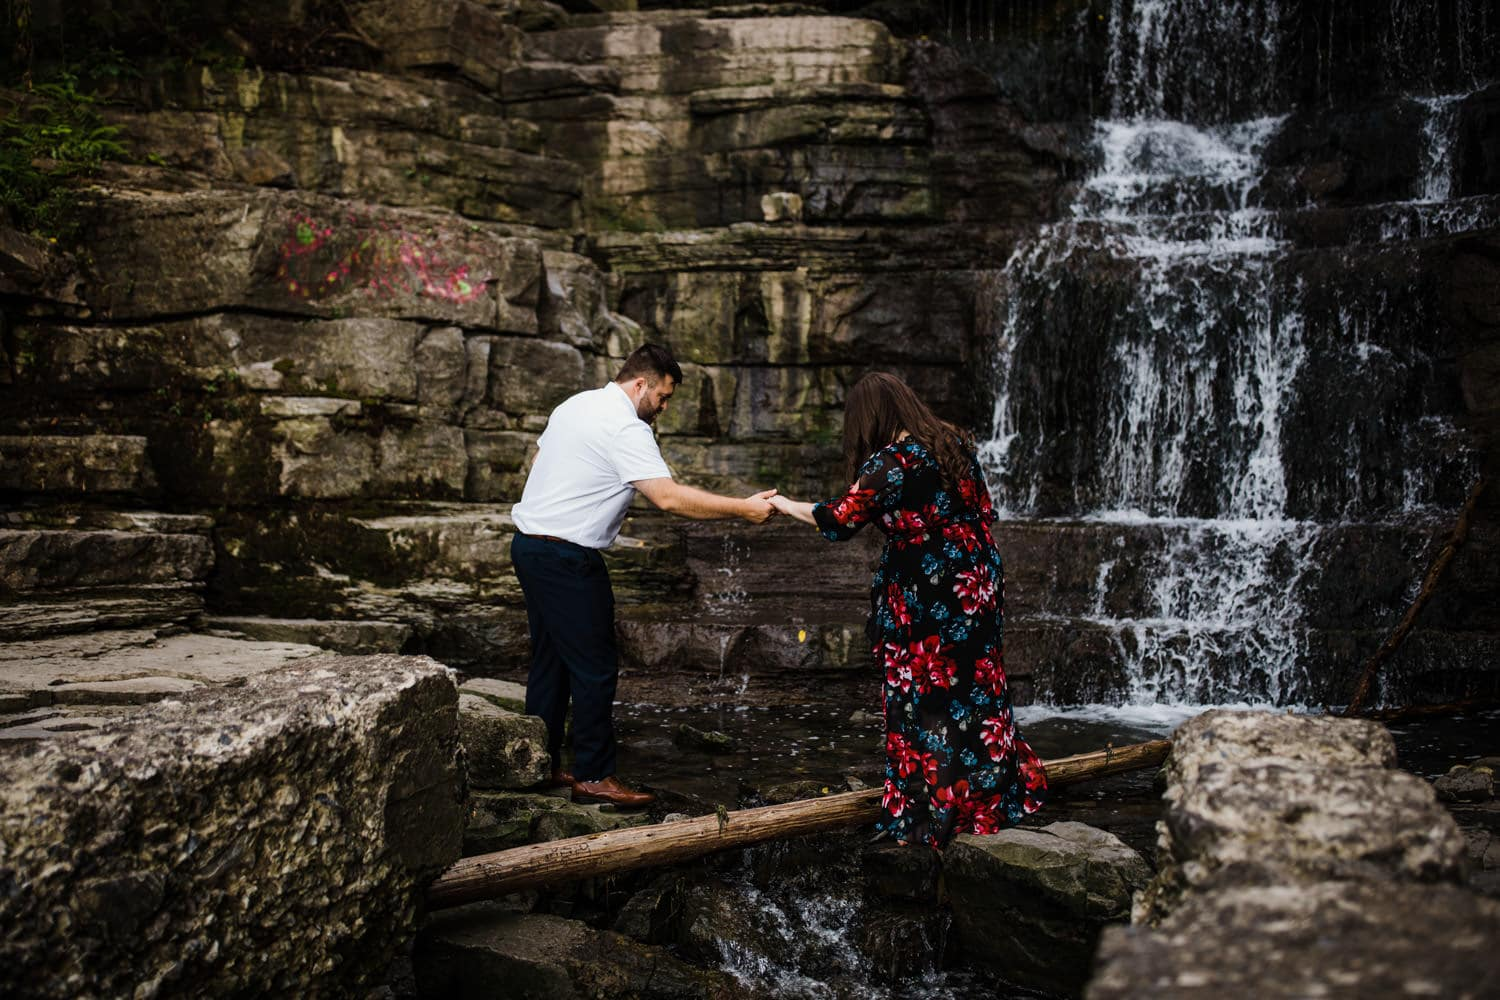 man helps woman cross over waterfall - princess louise falls engagement session